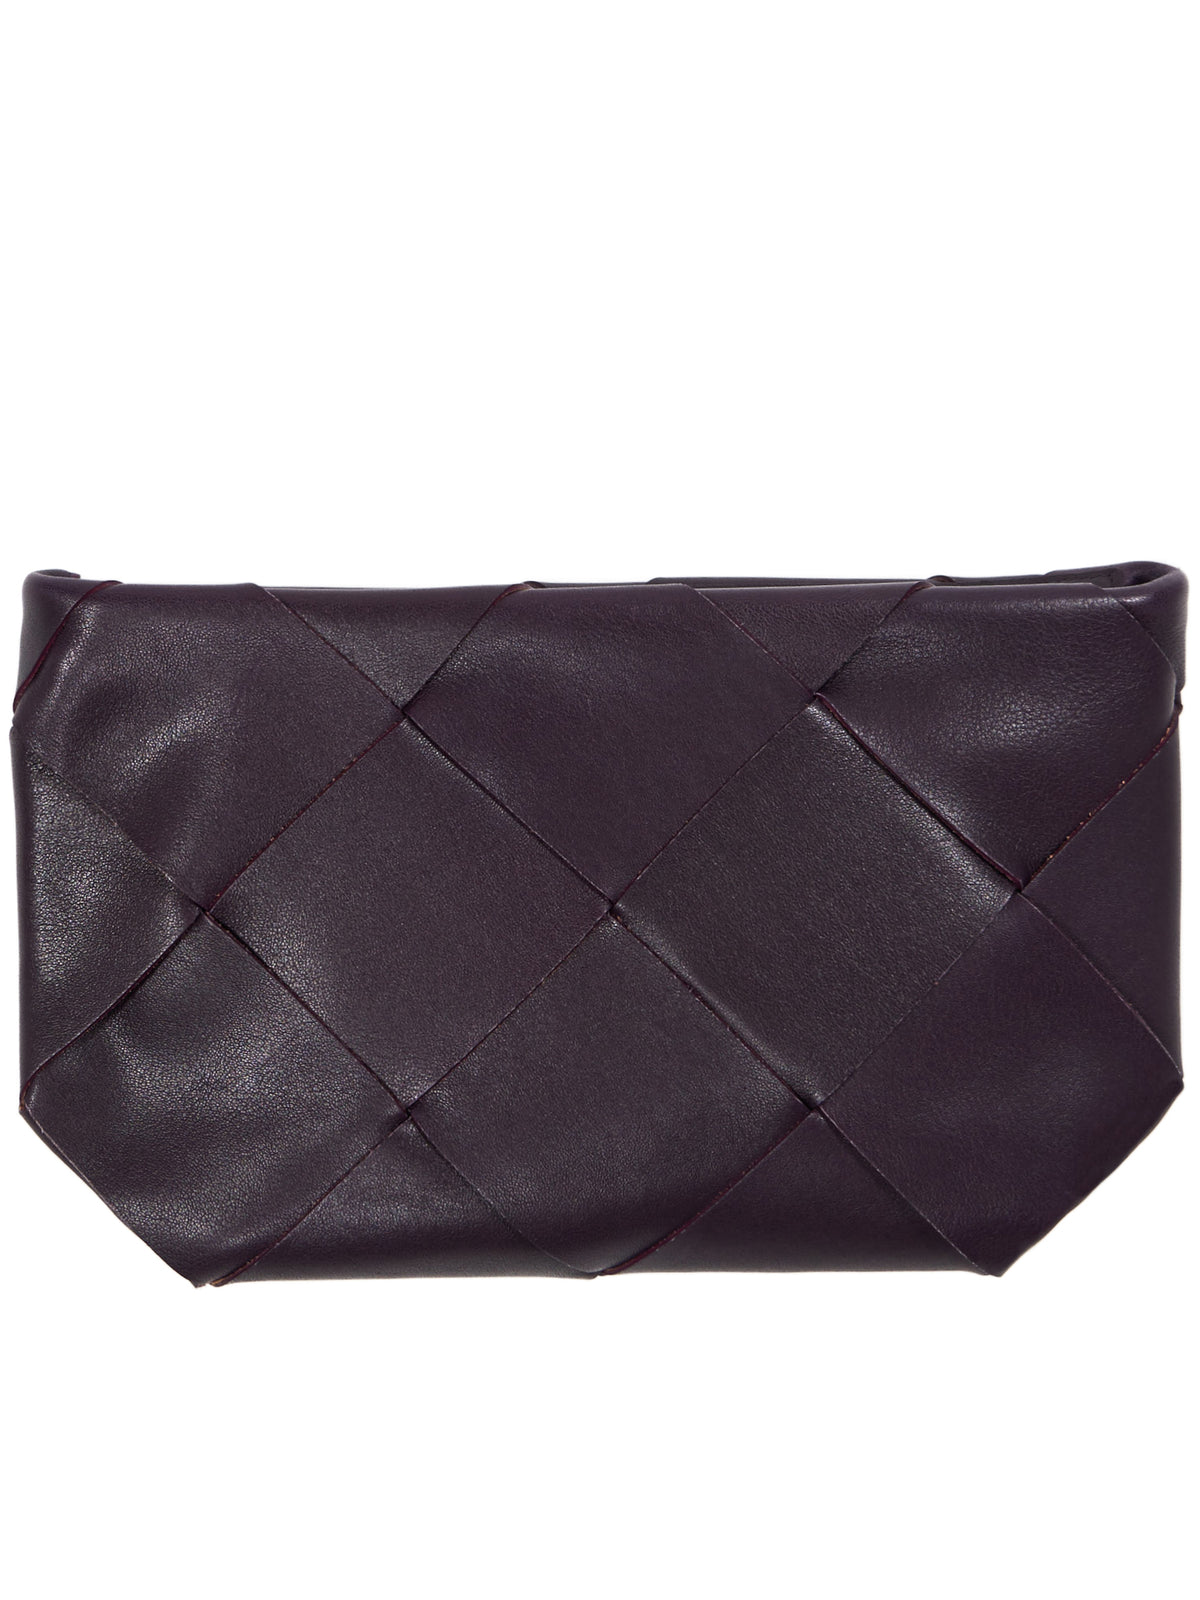 Glacé Nappa Clutch (577771VMA31-PURPLE)